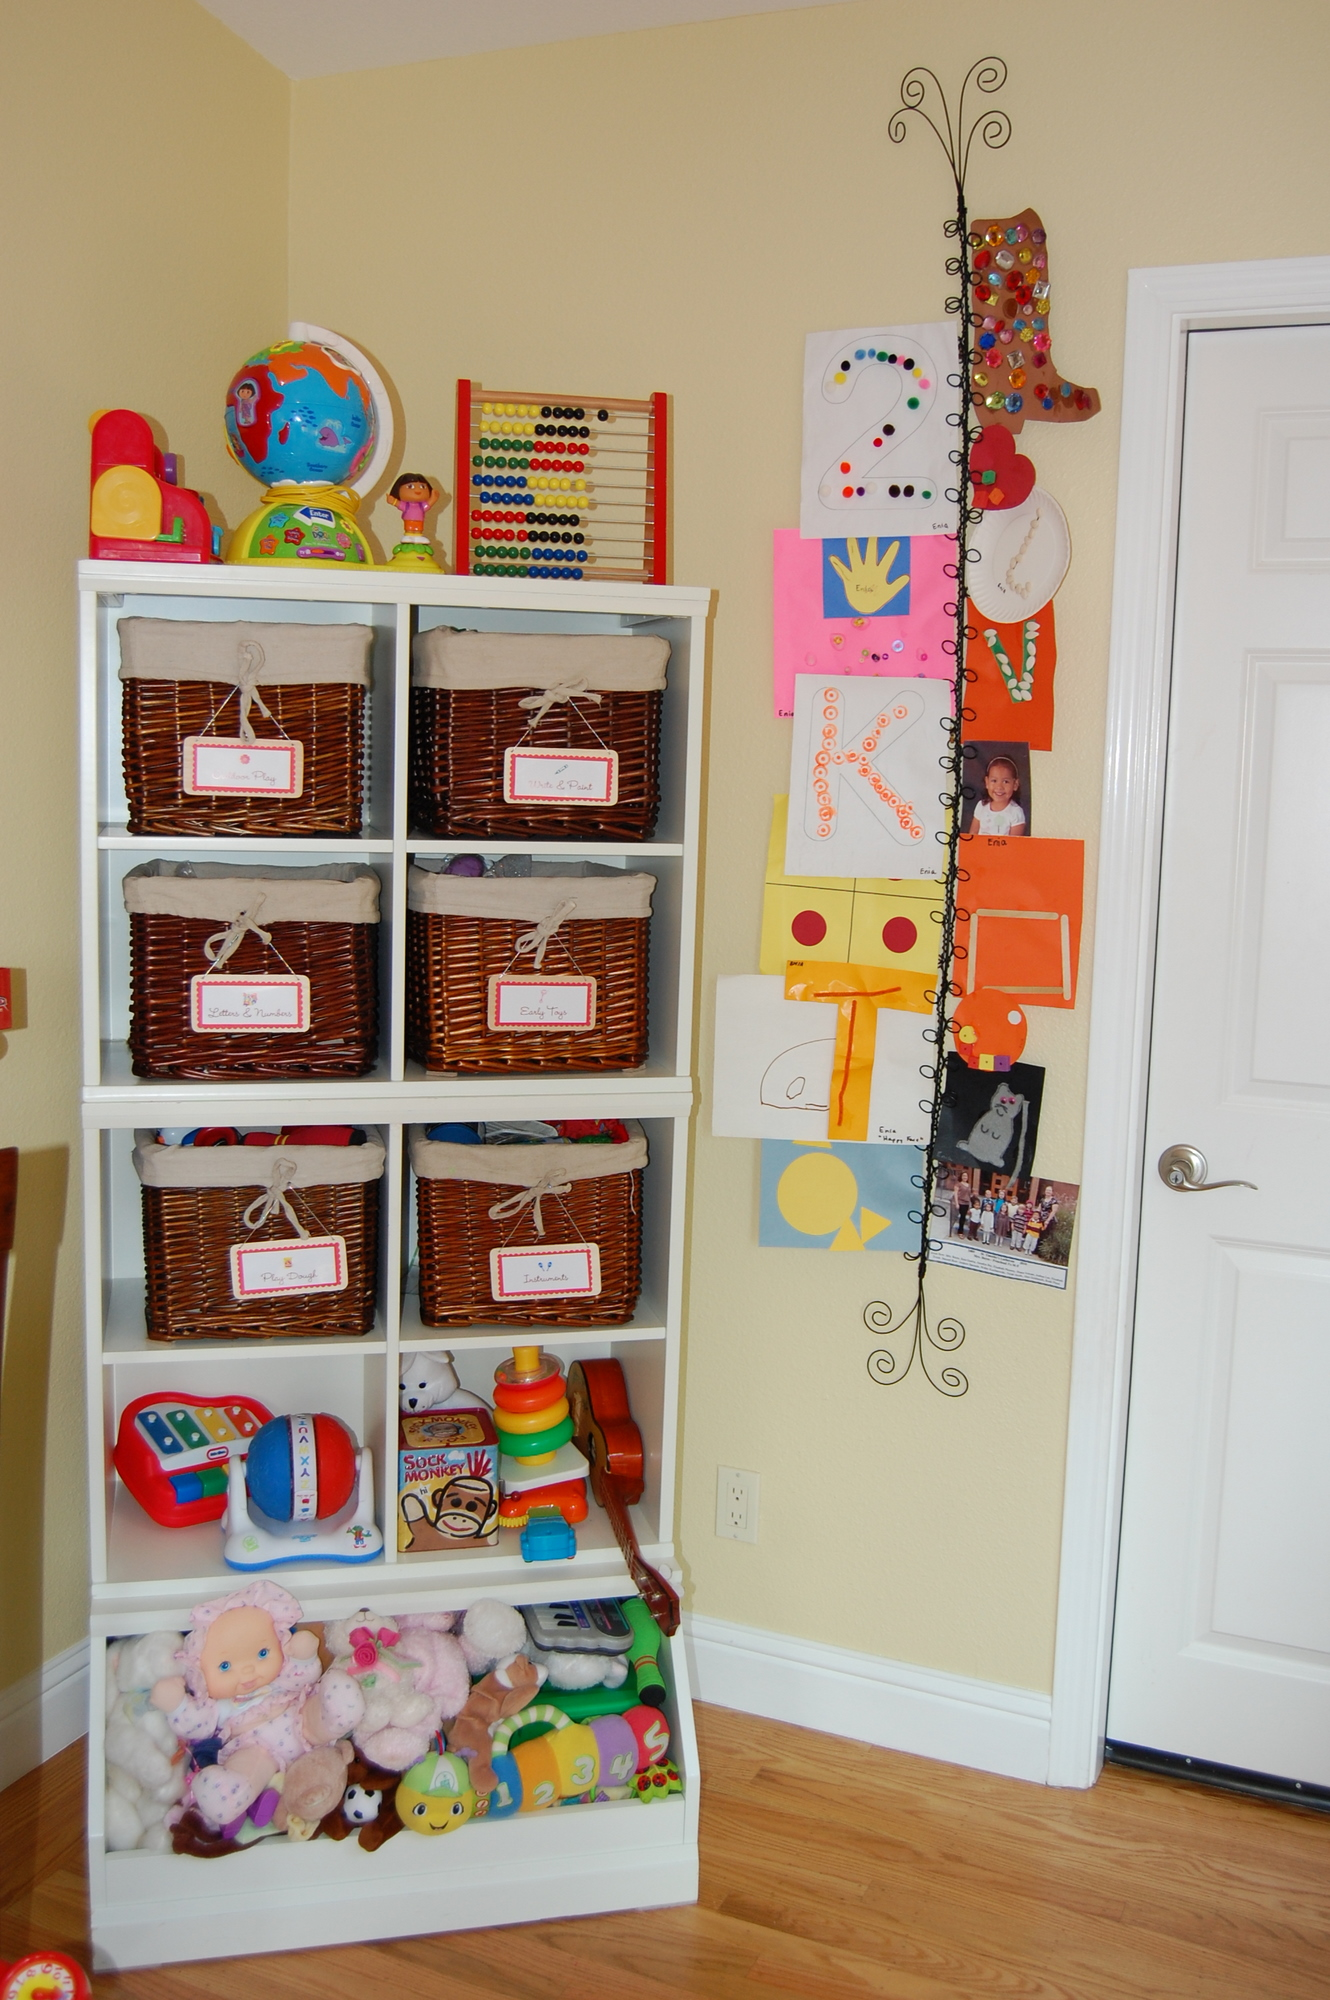 How To Display Kids Art Without Making It Bothersome